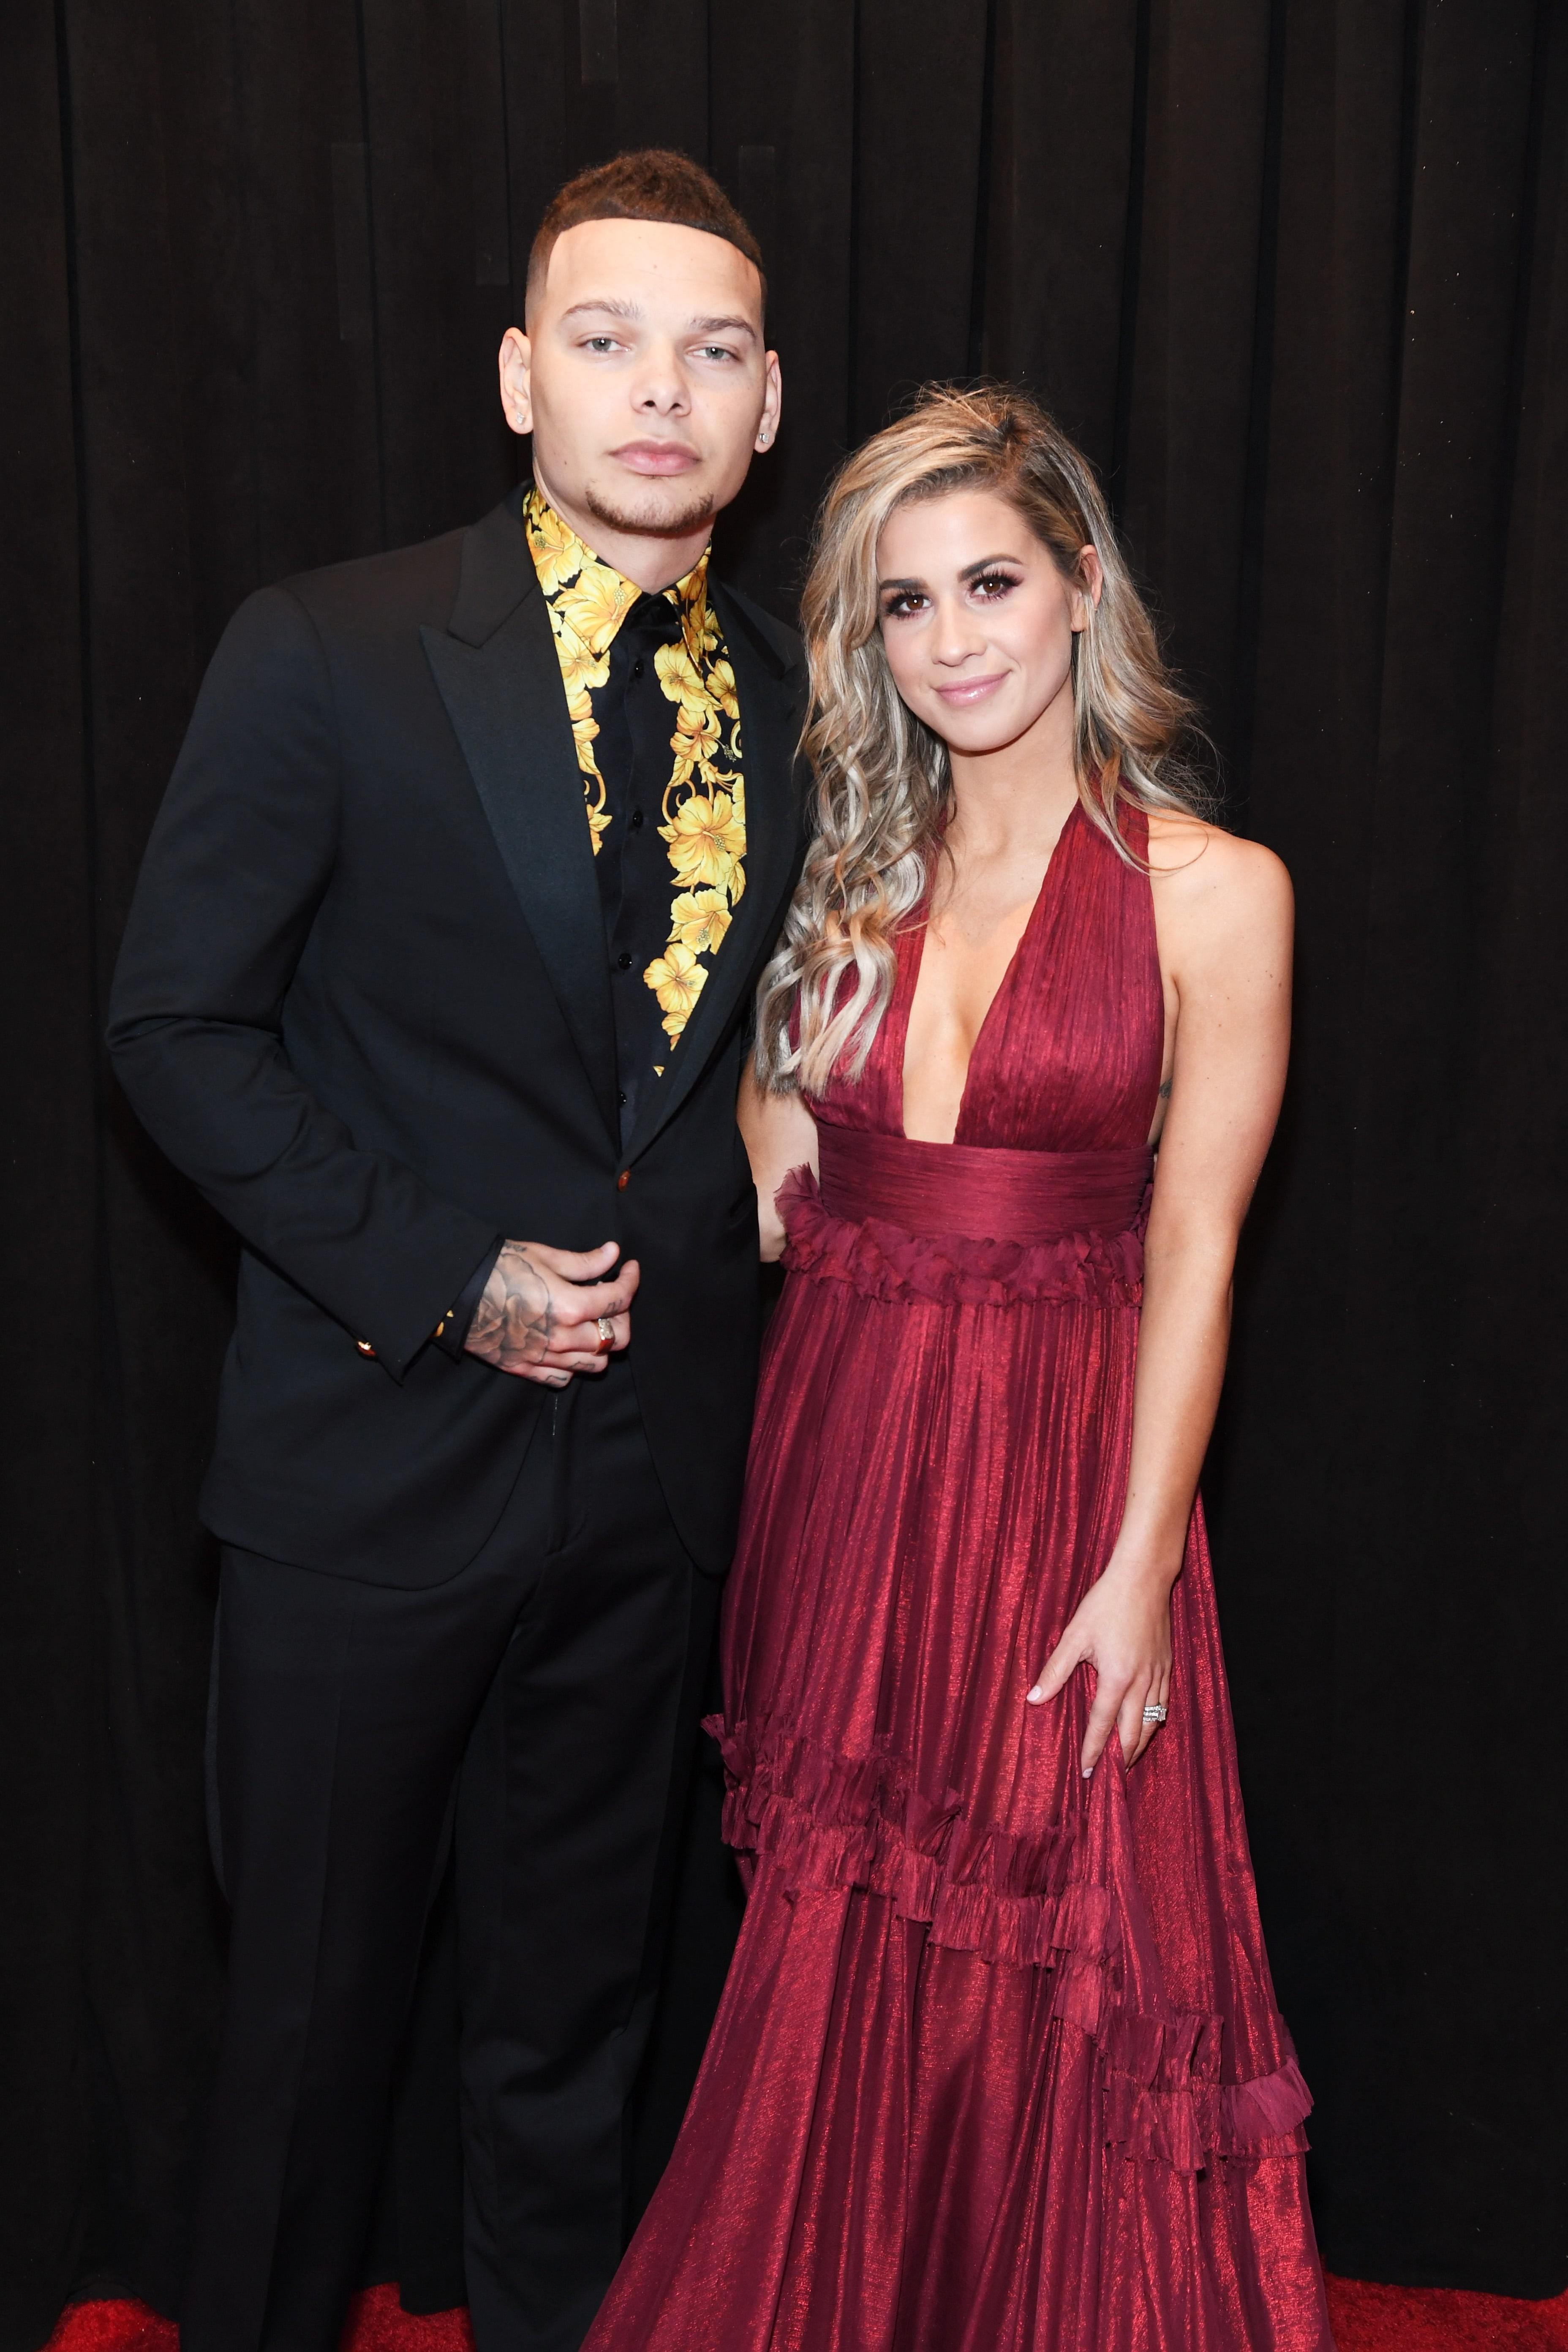 LOS ANGELES, CA - FEBRUARY 10: Kane Brown (L) and Katelyn Jae attend the 61st Annual GRAMMY Awards at Staples Center on February 10, 2019 in Los Angeles, California. (Photo by Kevin Mazur/Getty Images for The Recording Academy)